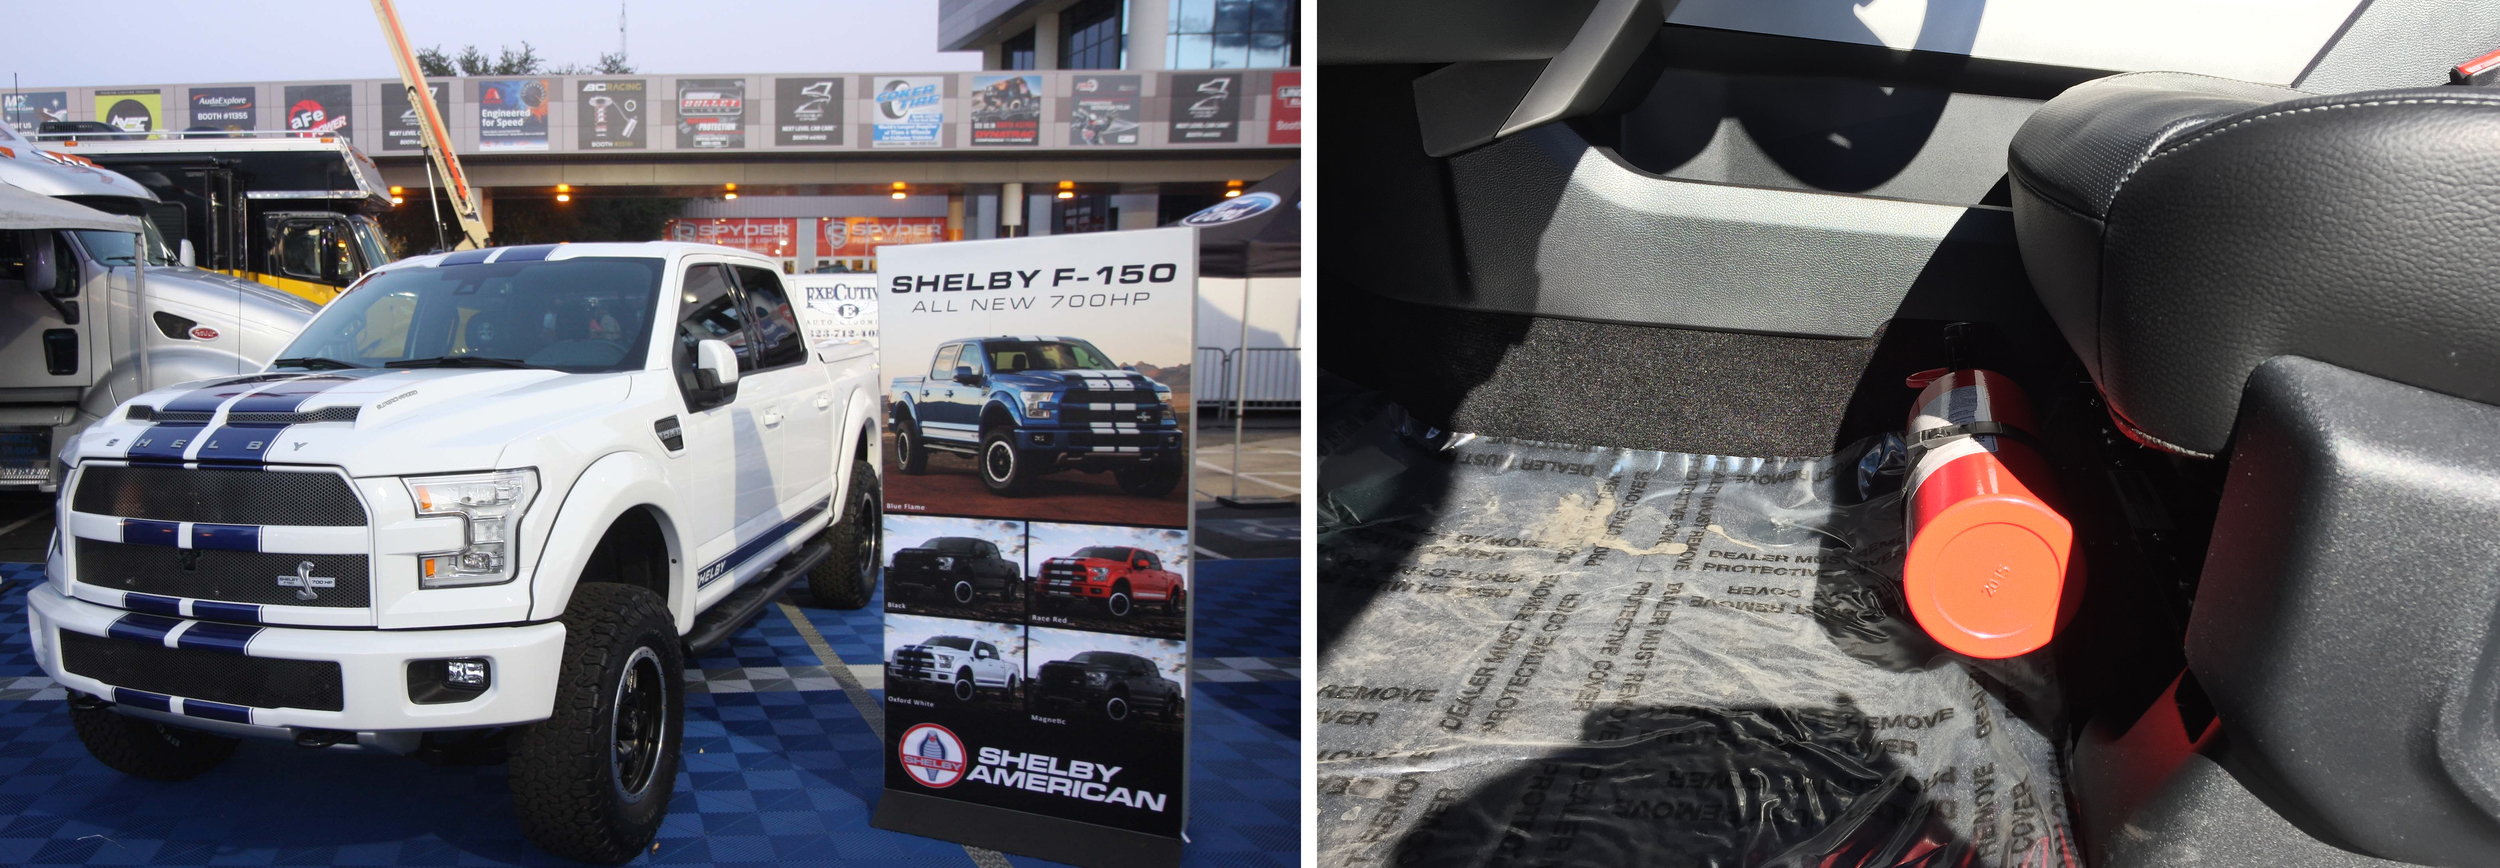 2016 Ford F150 on Shelby booth at SEMA